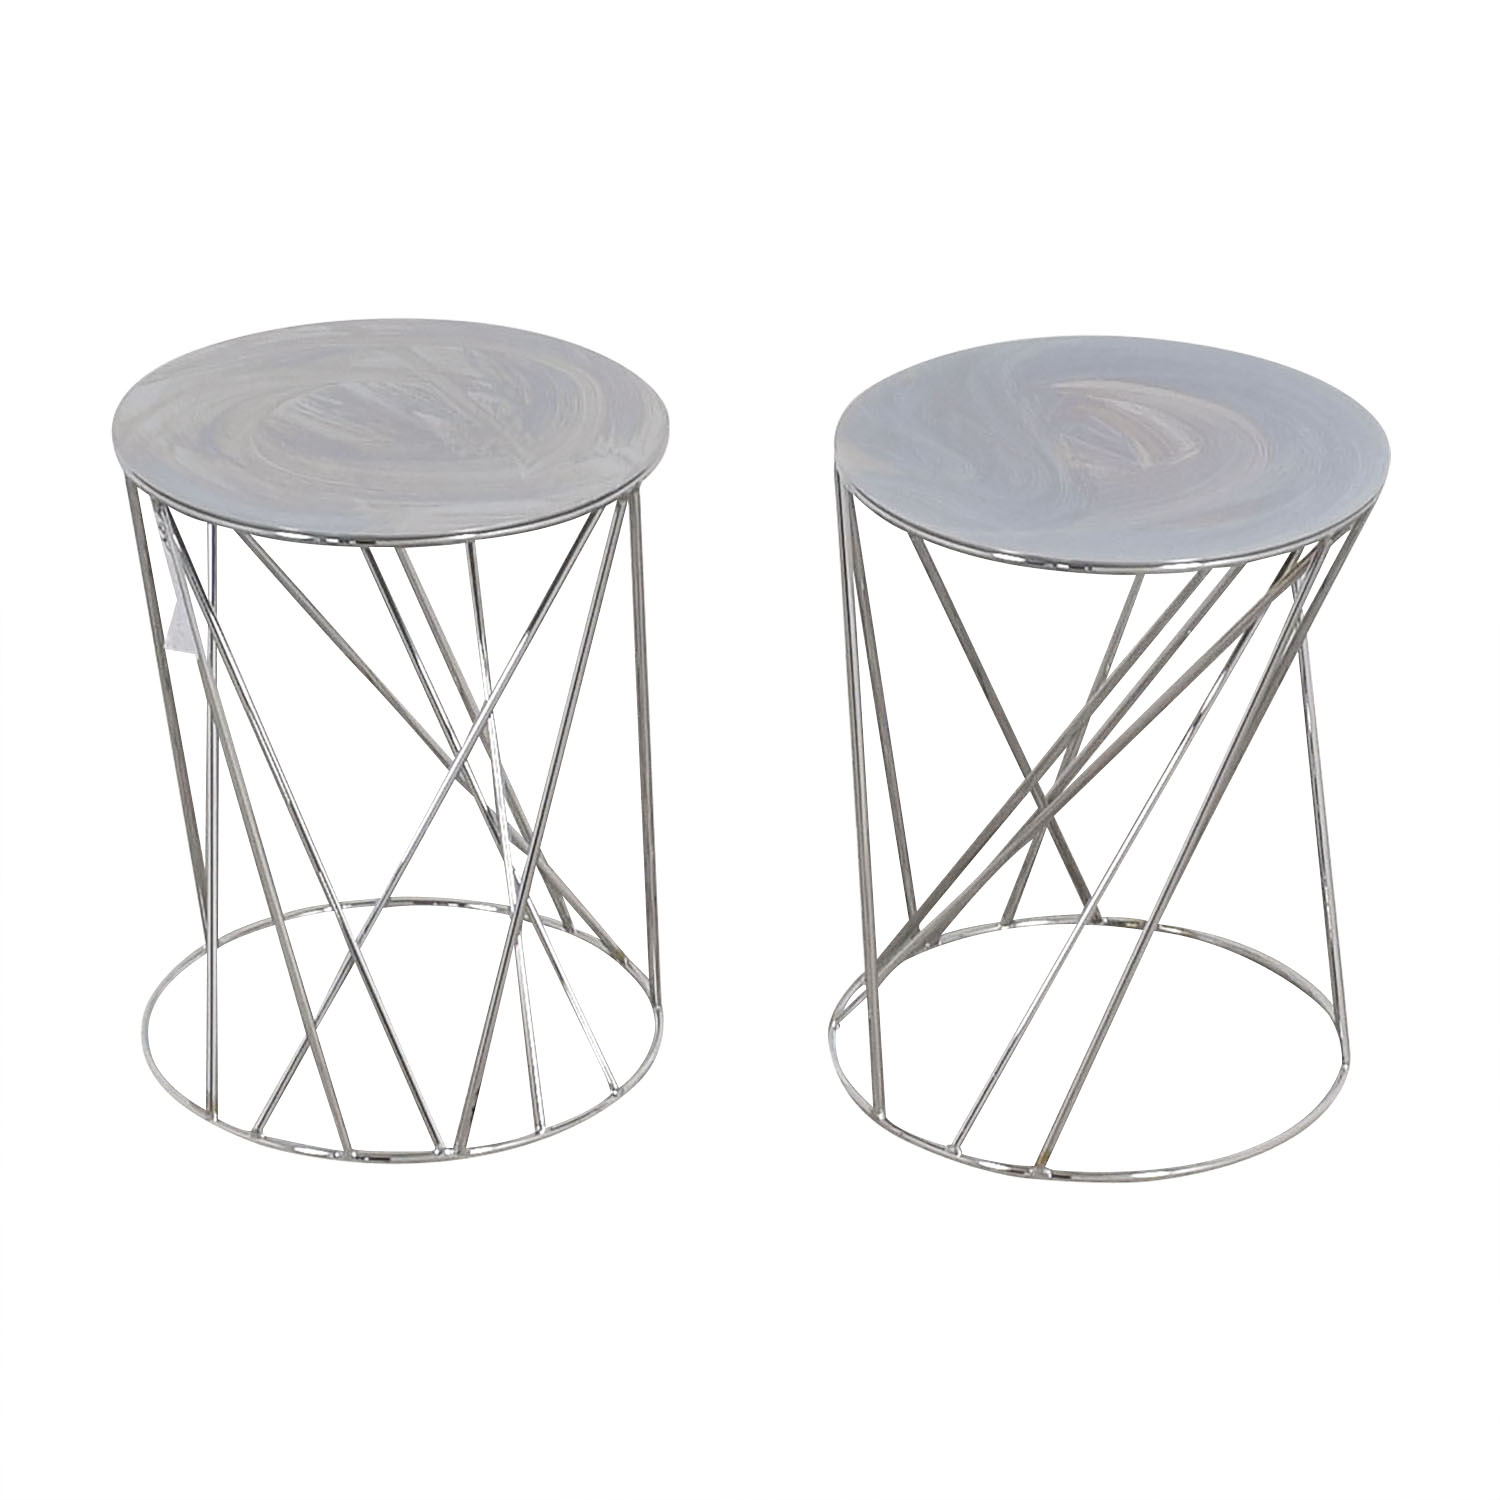 West Elm West Elm Mid-Century End Tables on sale